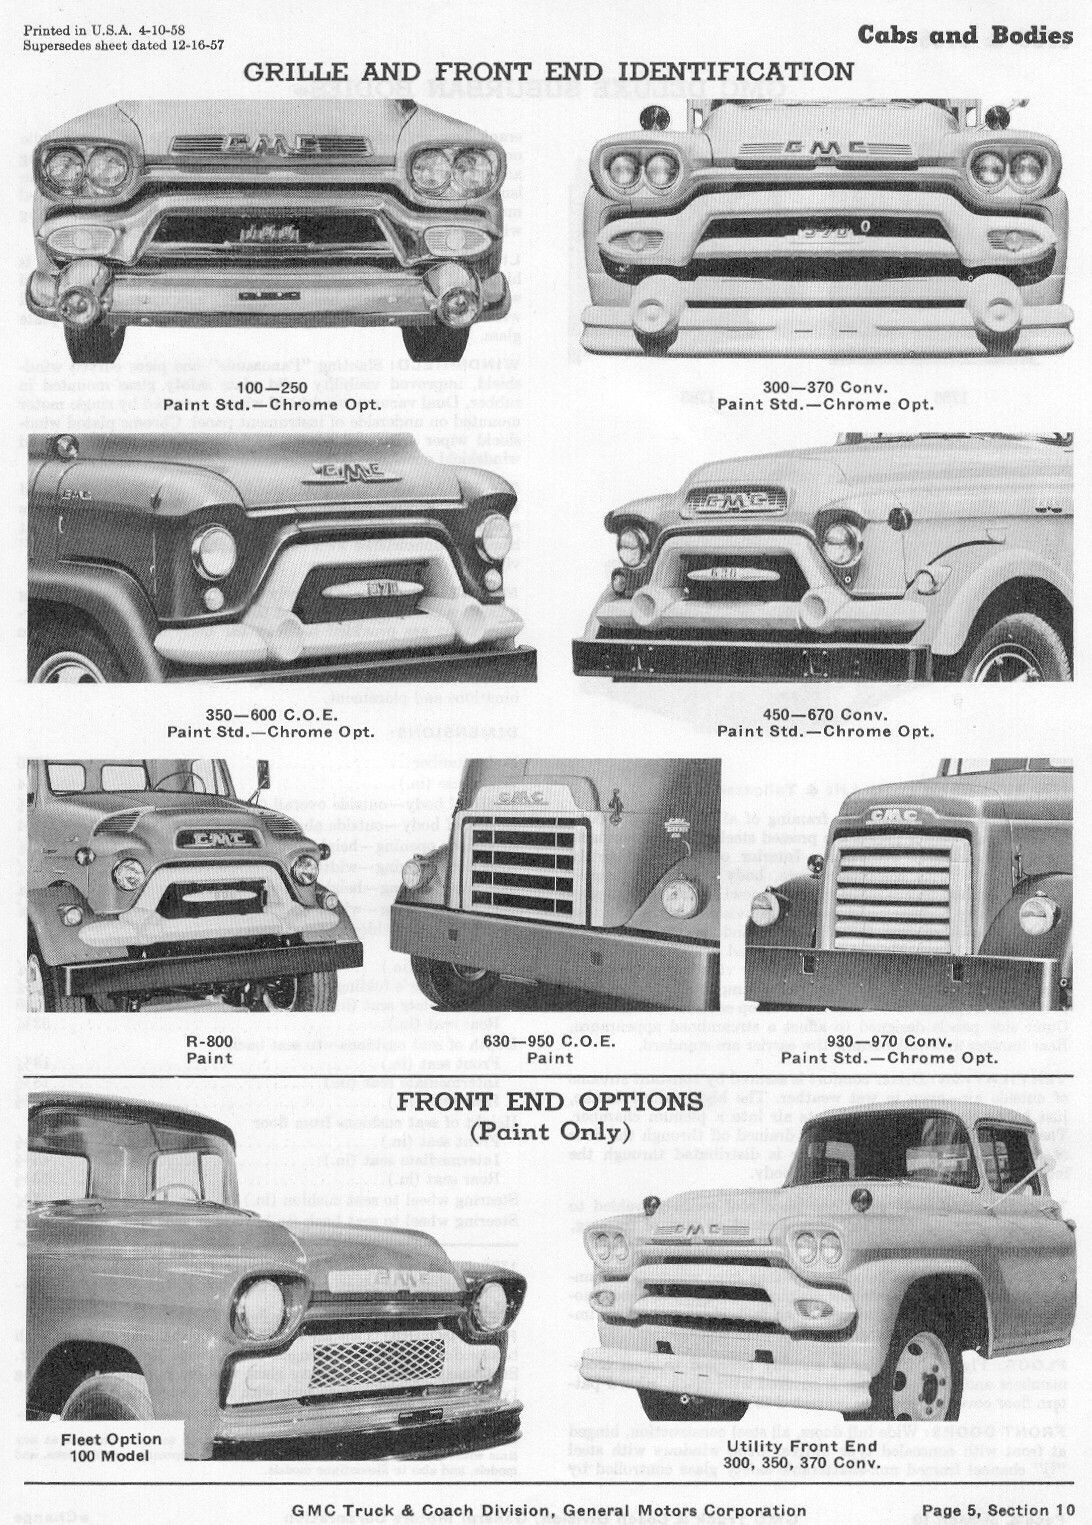 Pin By Jackson On Gmc Light Pinterest 1949 Chevy Vin Decoder Explore Gm Trucks And More